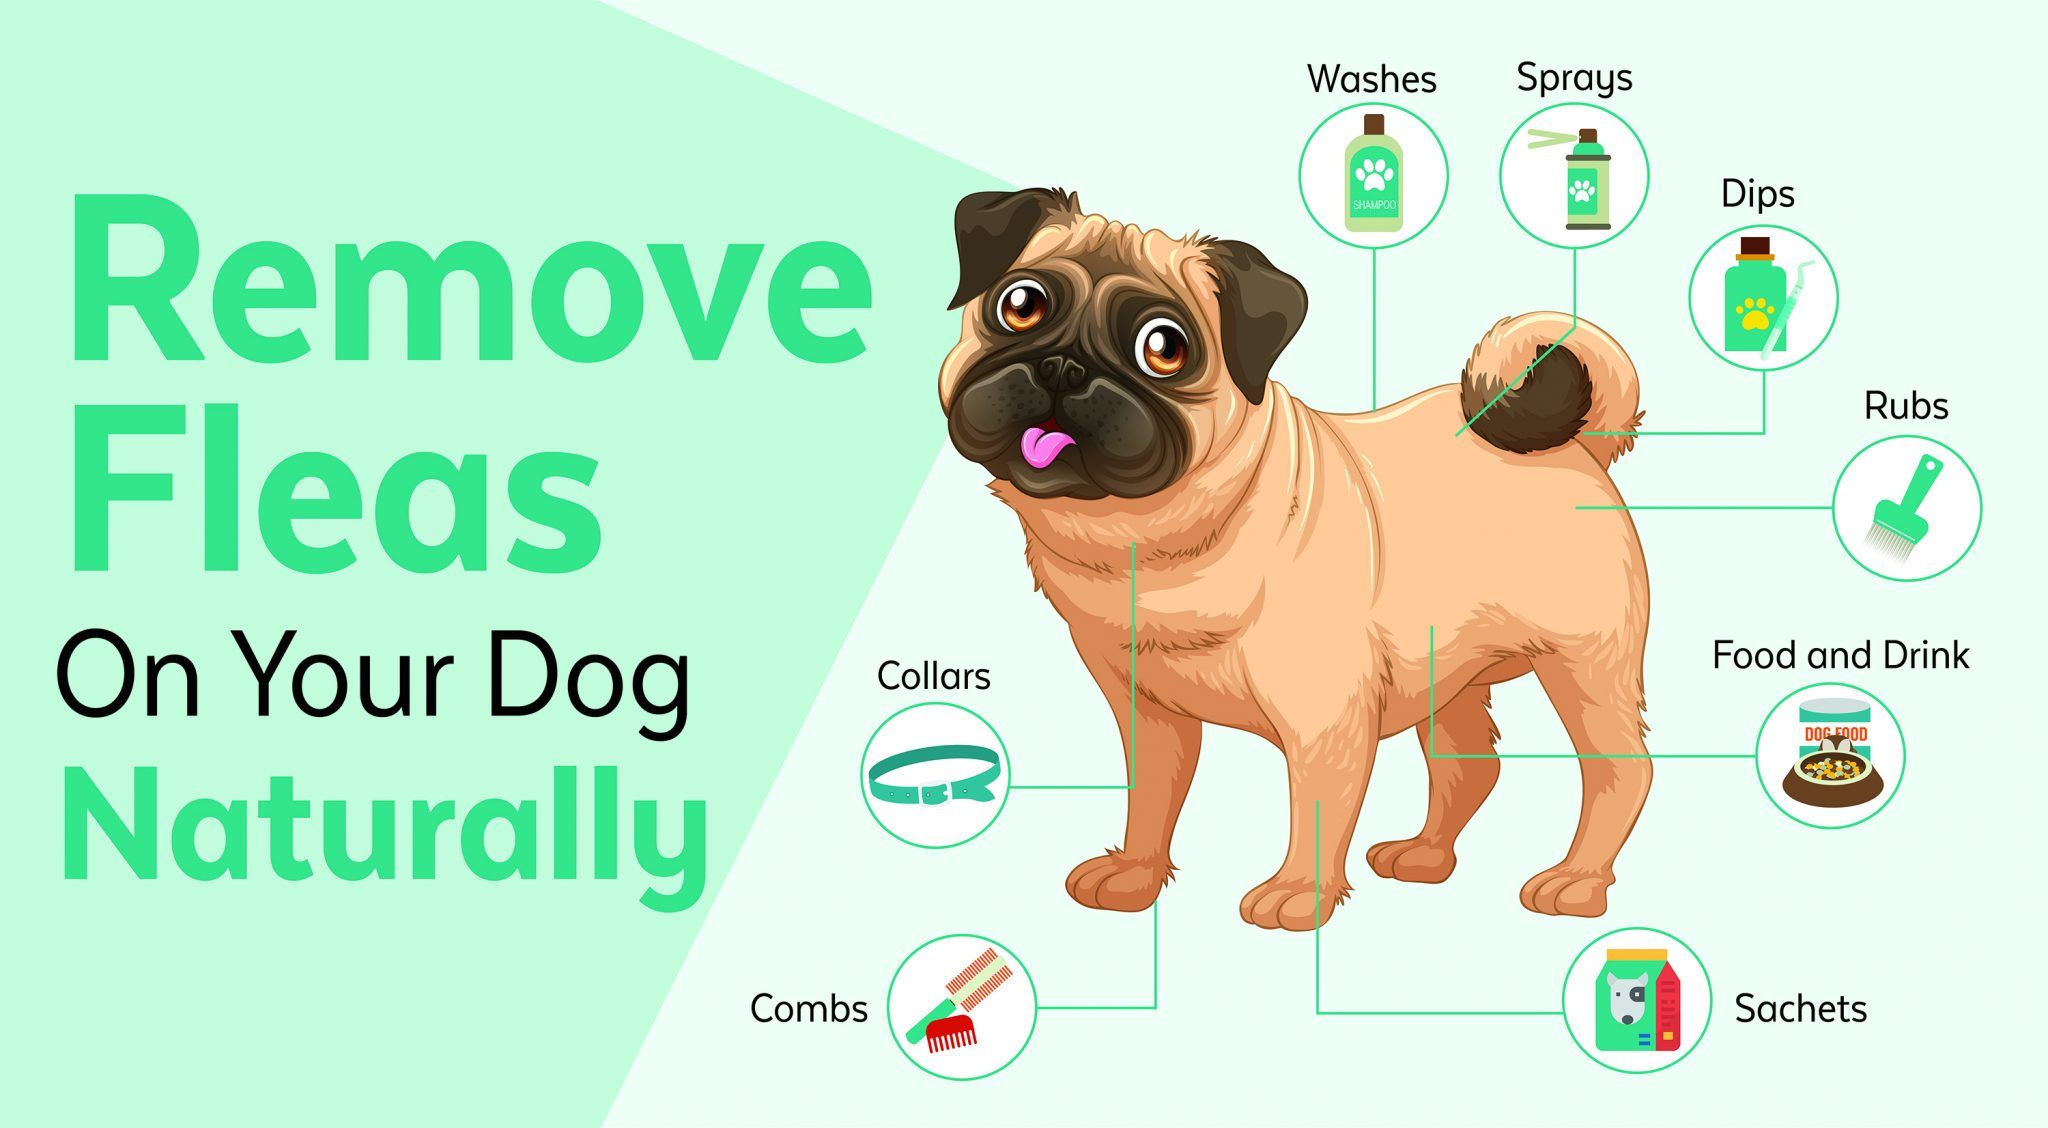 30 Ways To Naturally Prevent And Get Rid Of Fleas On Dogs Jet Pet Resort Pet Resort Fleas Dog Care